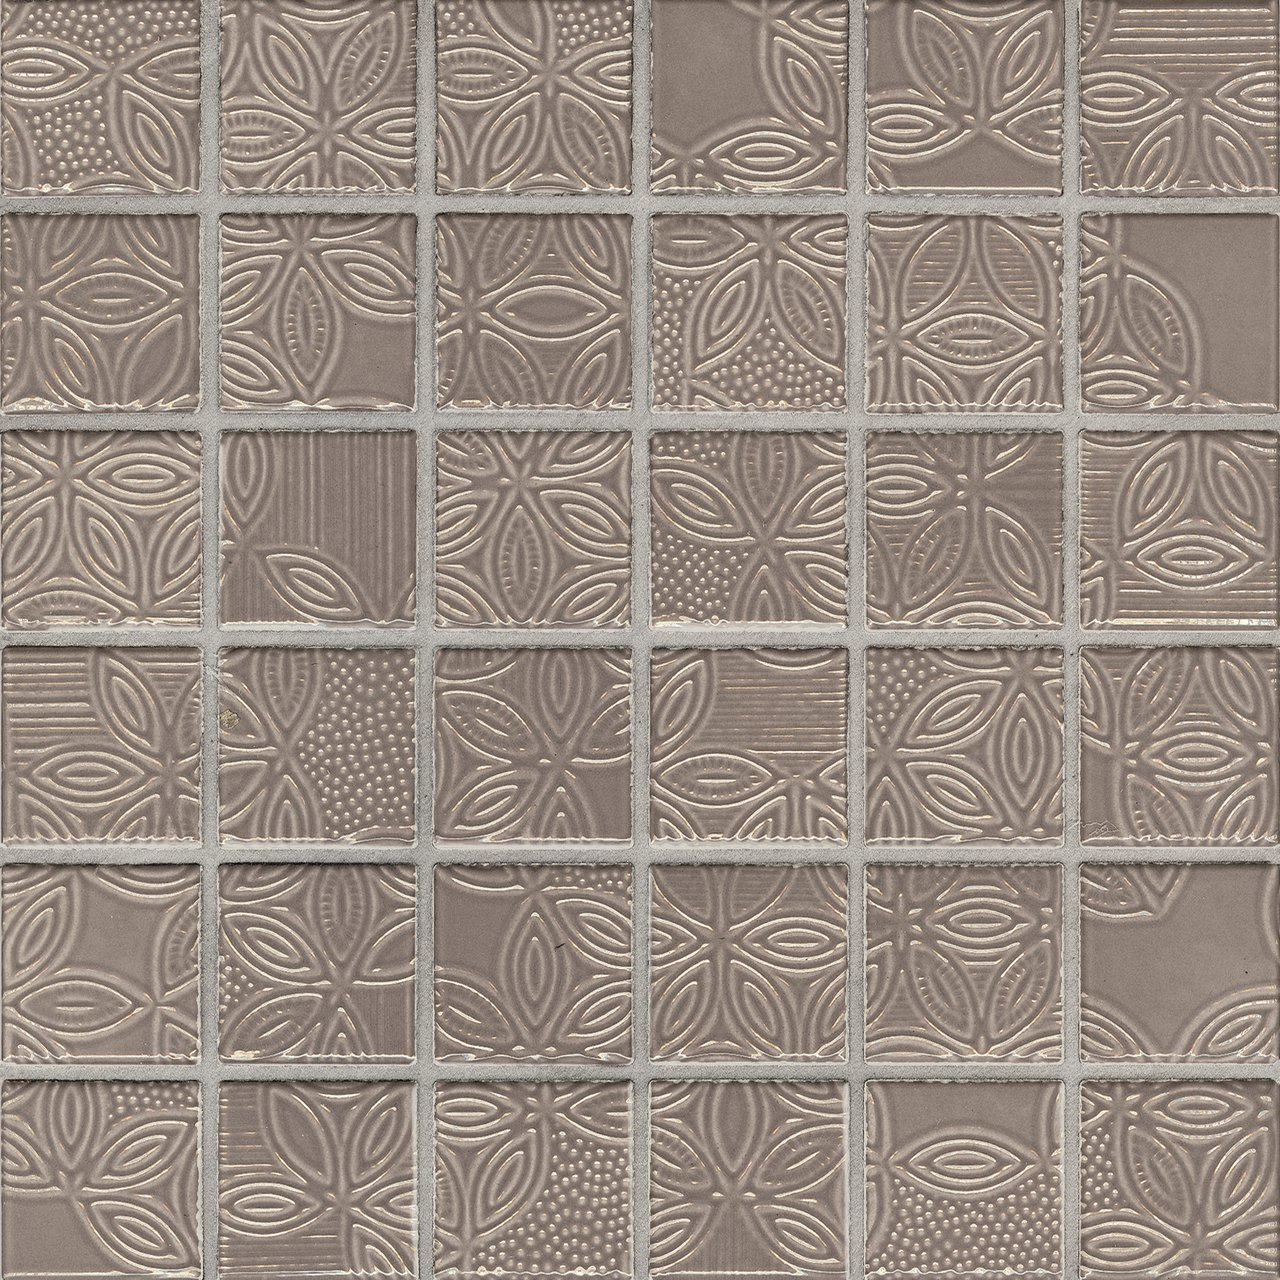 Jasba FLORIS dust intense 47x47x6,5 mm 46151H